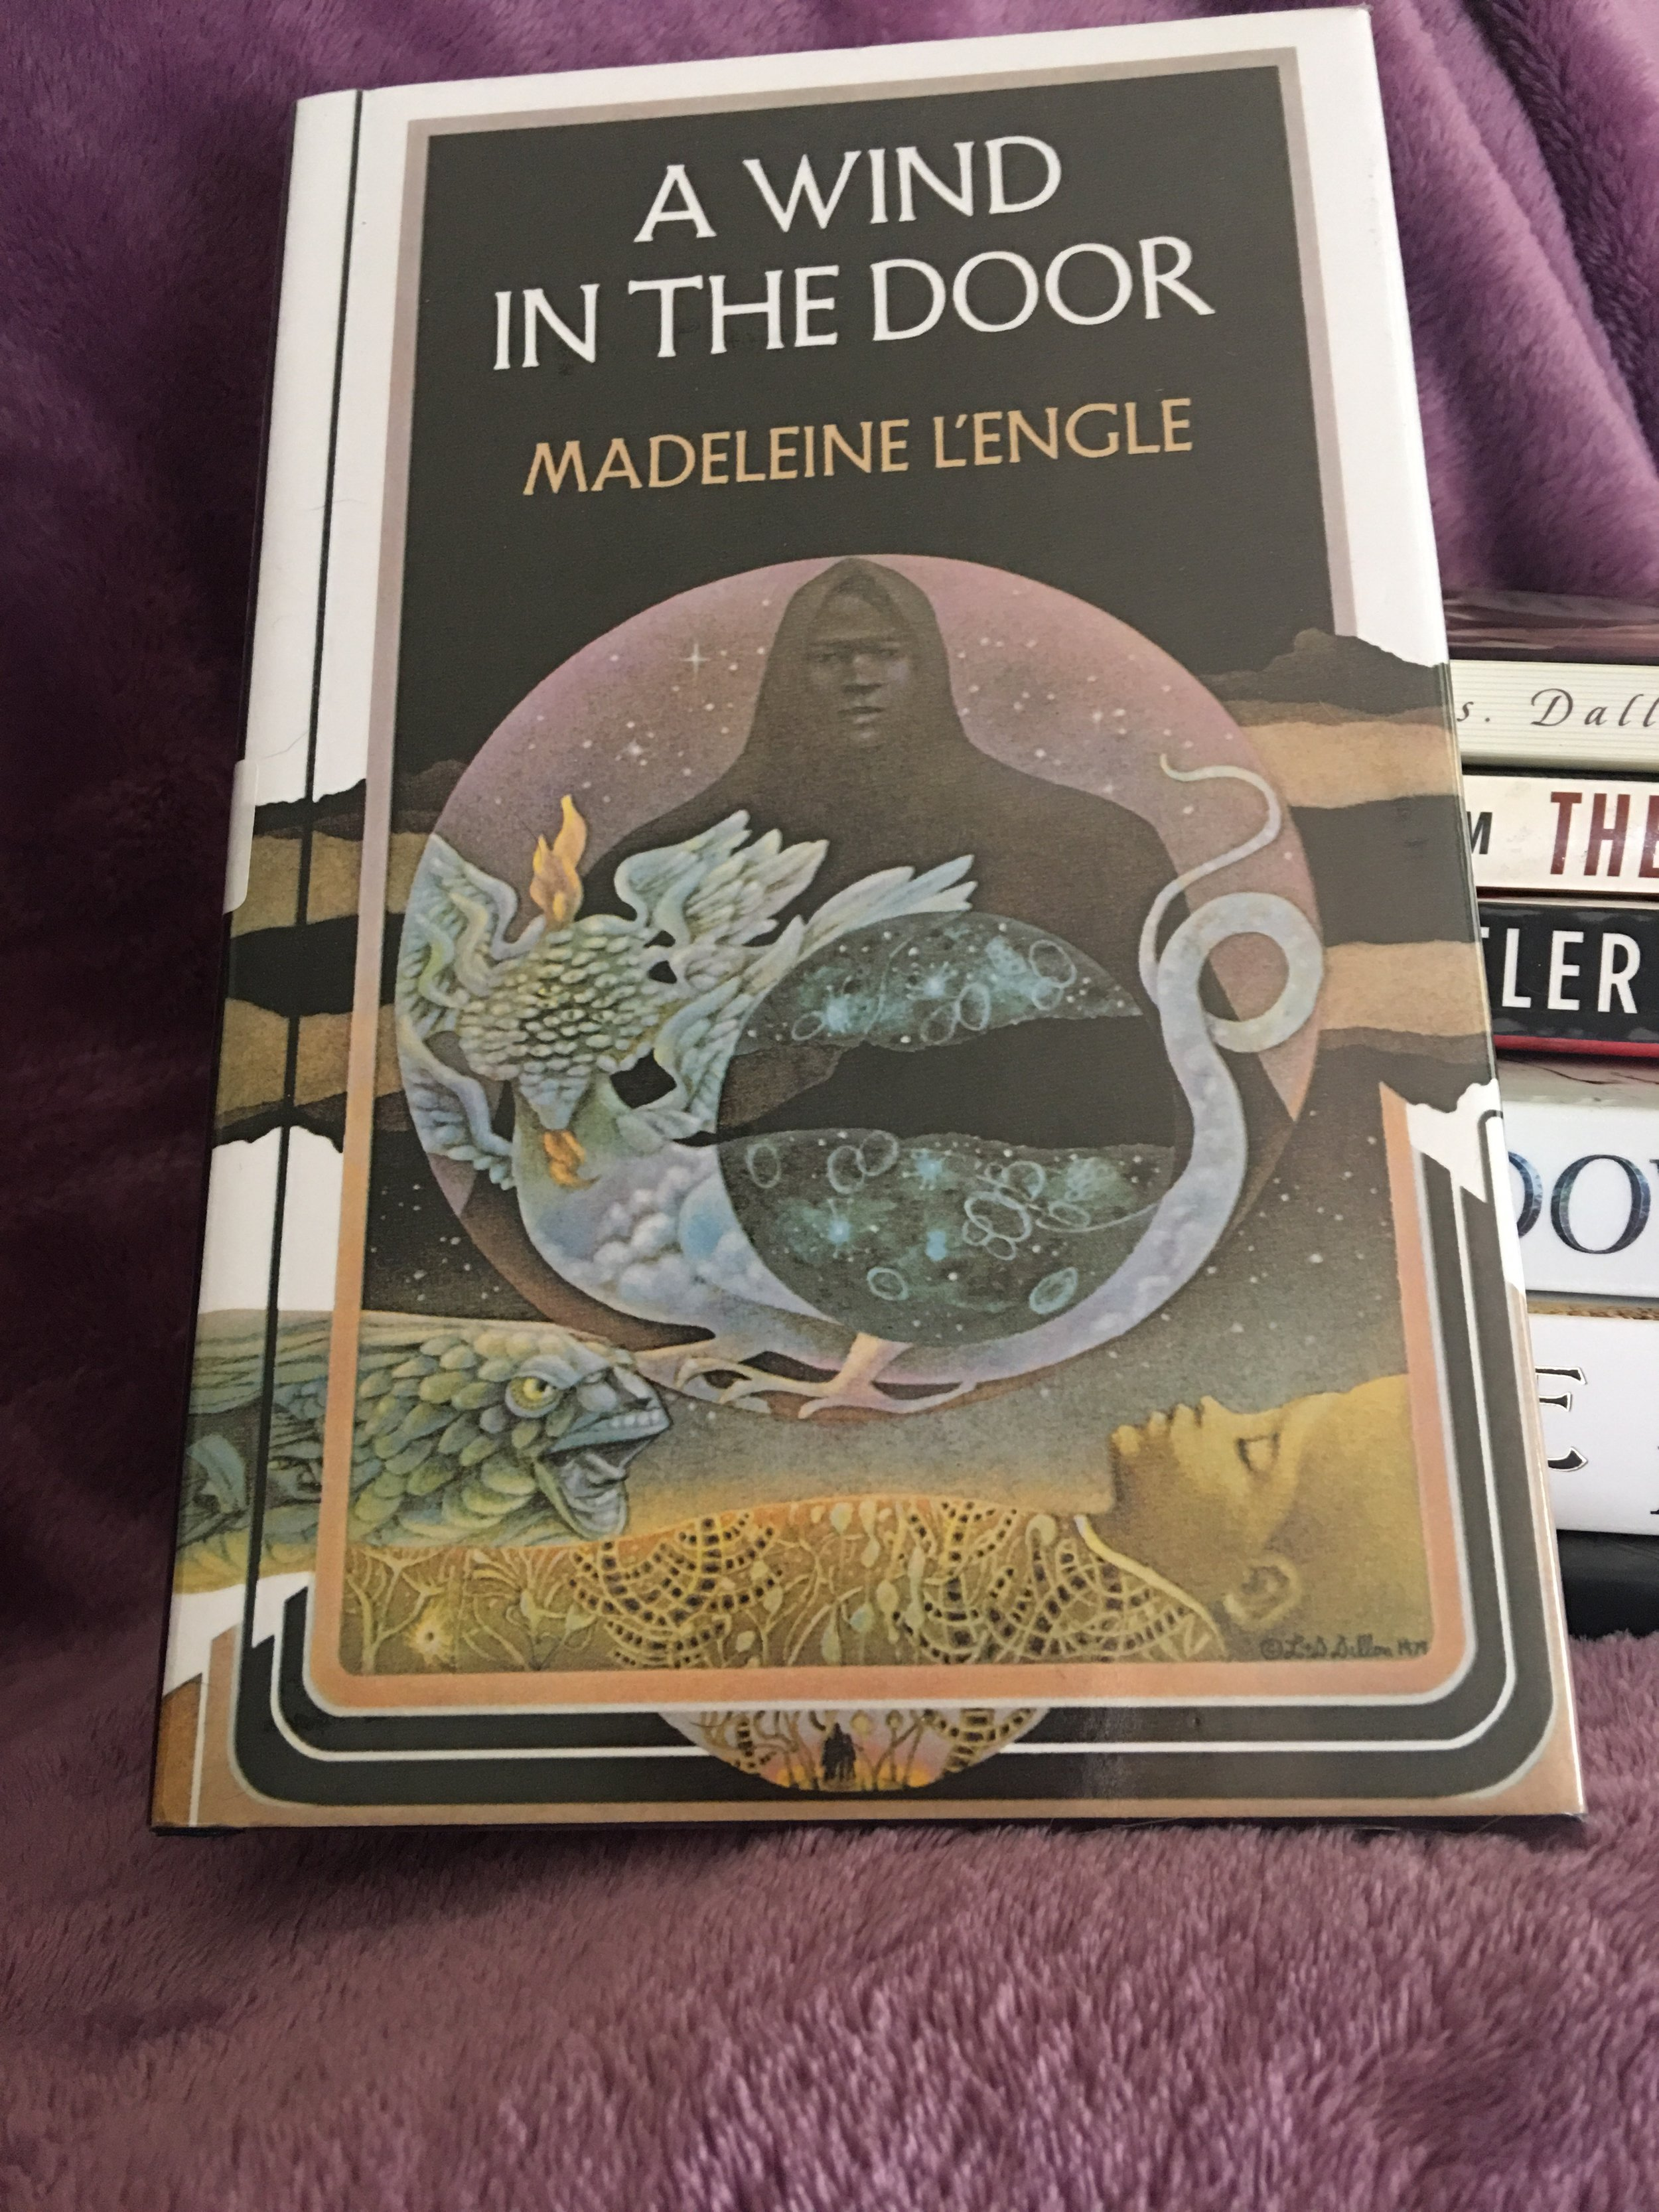 A Wind in the Door - By Madeleine L'Engle | Time Quintet #2My rating: 5 stars | Pages: 224What made me pick it up:Read a Wrinkle in Time last year for bookclub and wanted to continue on with the series.Format:Hardcover | Source: Library2018 challenge/s: Goodreads 2018 Reading Challenge